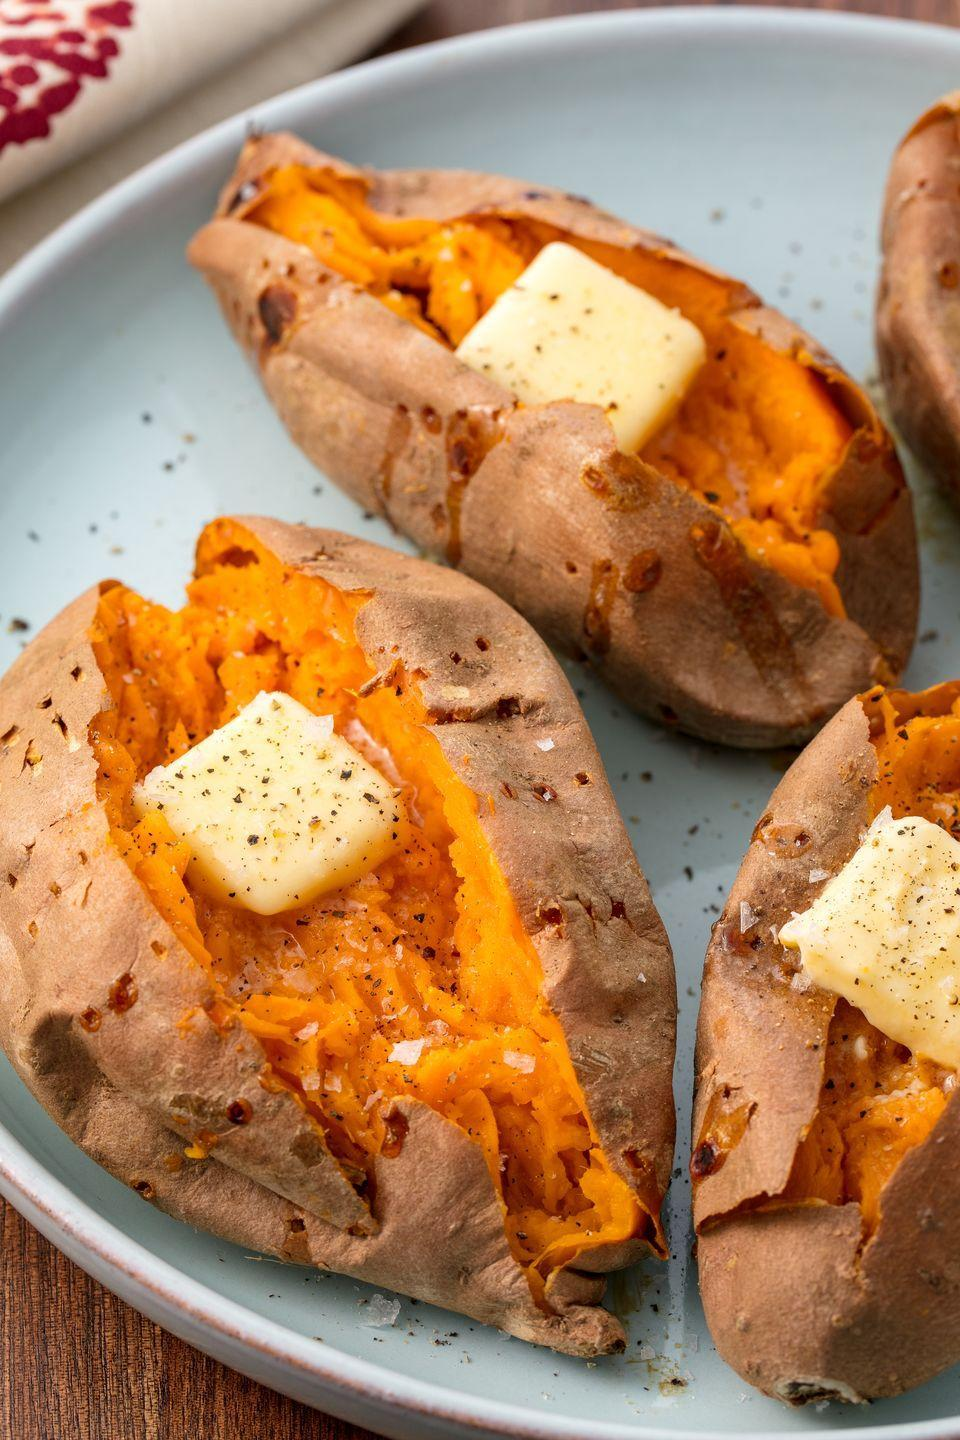 "<p>Sweet potatoes are packed full of beta-carotene, which your body can convert to vitamin A and use to protect against diseases like cancer and heart disease, as well as chronic conditions caused by inflammation in the body, like rheumatoid arthritis. The beta-carotene found in sweet potatoes can also help to manage and stabilize blood sugar levels.</p><p><strong>Recipe: <a href=""https://www.delish.com/cooking/recipe-ideas/recipes/a55377/perfect-baked-sweet-potato-recipe/"" rel=""nofollow noopener"" target=""_blank"" data-ylk=""slk:Baked Sweet Potato"" class=""link rapid-noclick-resp"">Baked Sweet Potato</a></strong></p>"